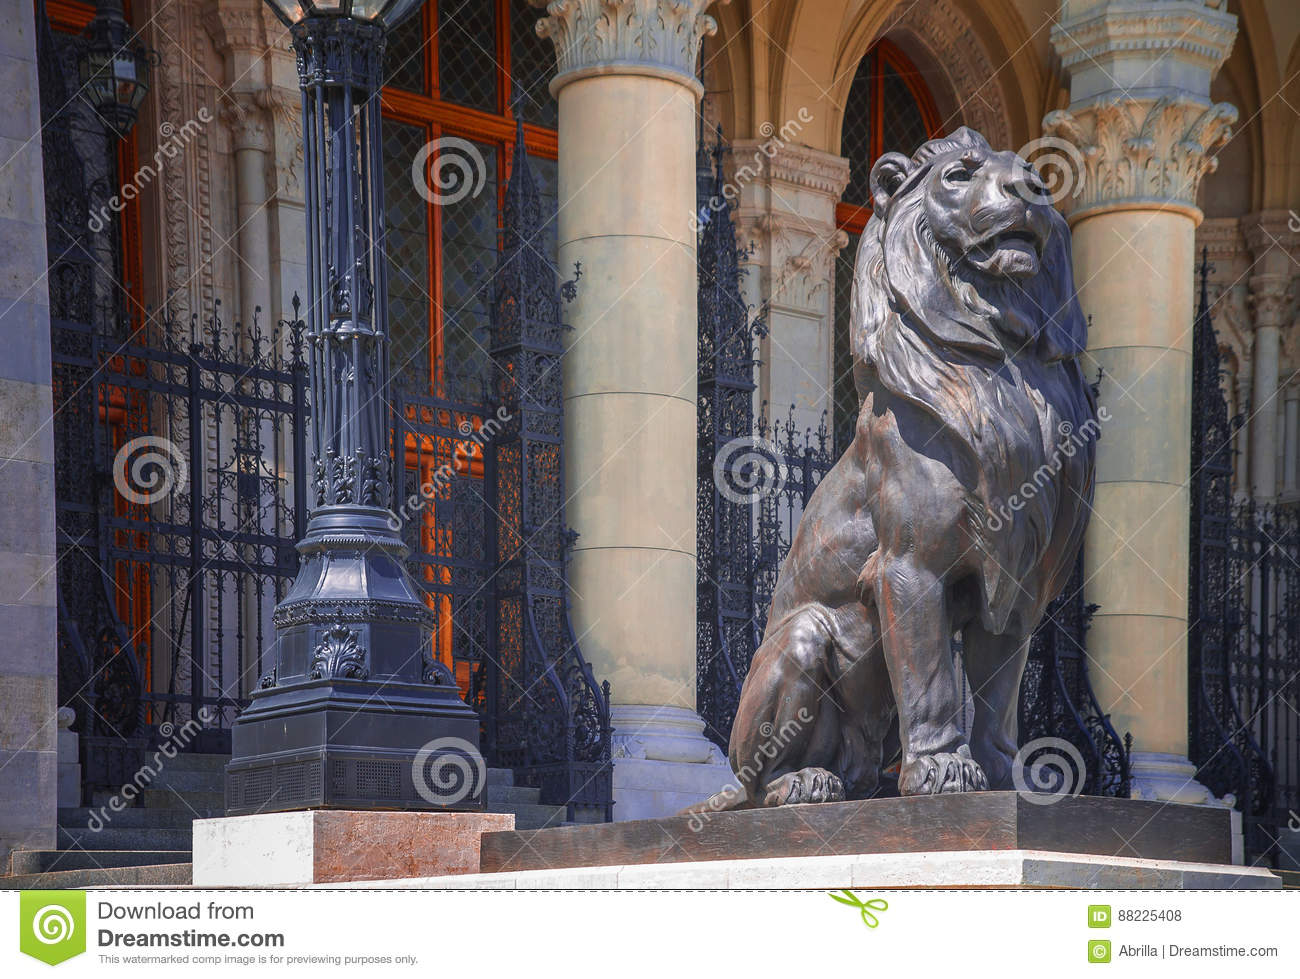 Sculpture of a lion near the Parliament building in Budapest